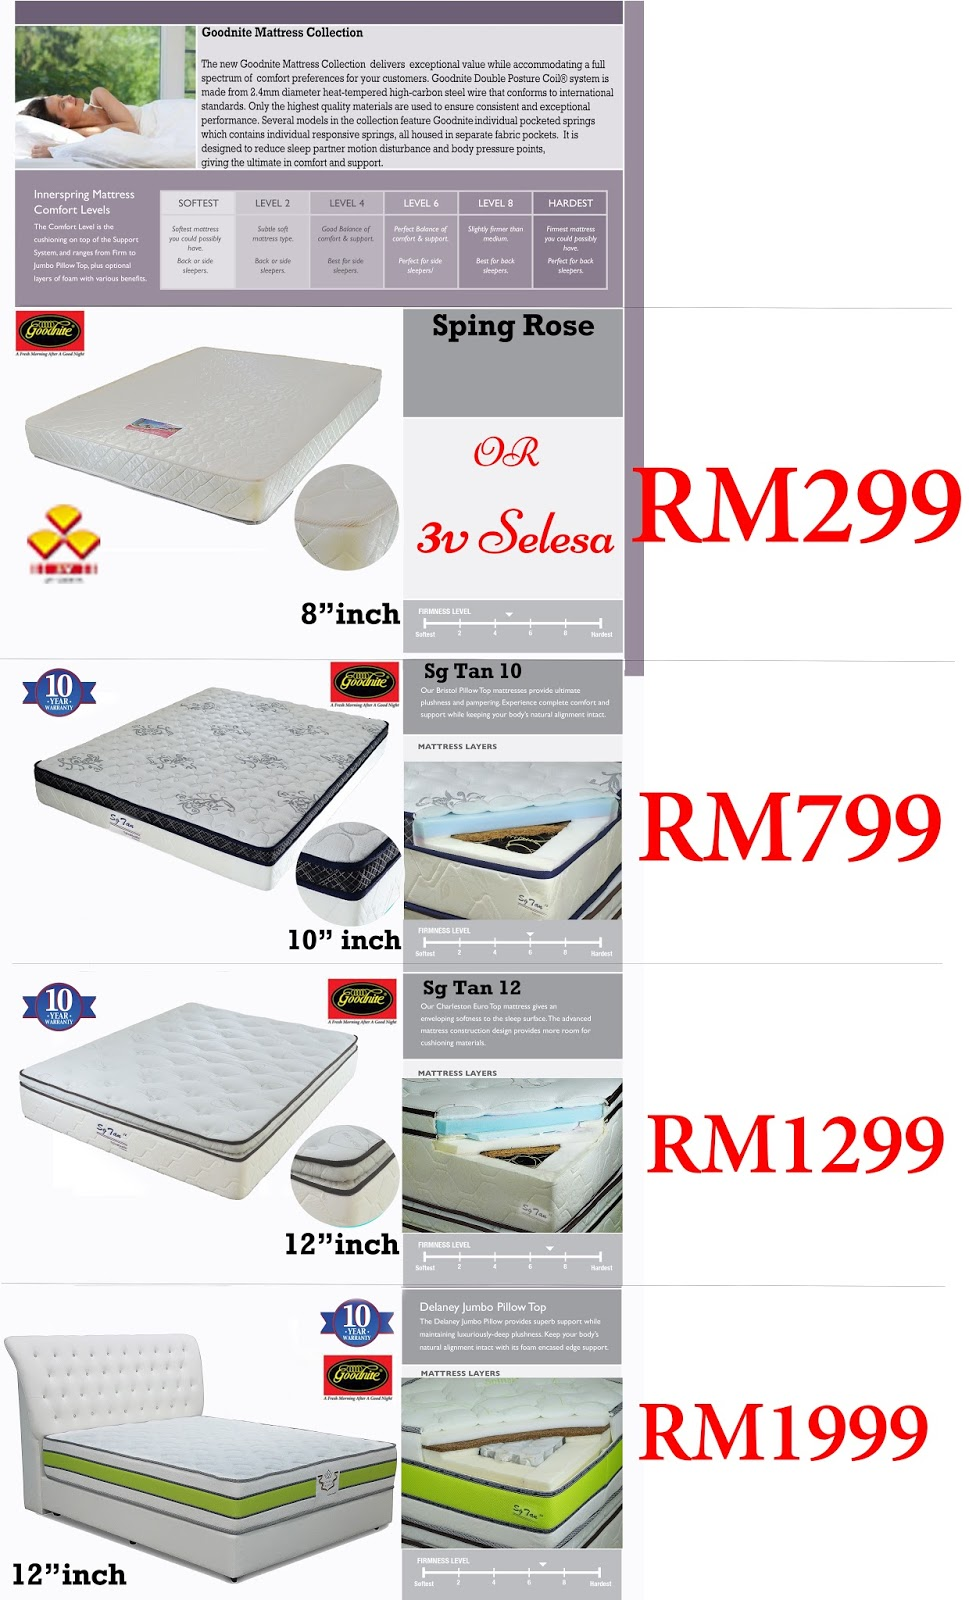 SG TAN 3V Goodnite Promo Mattress